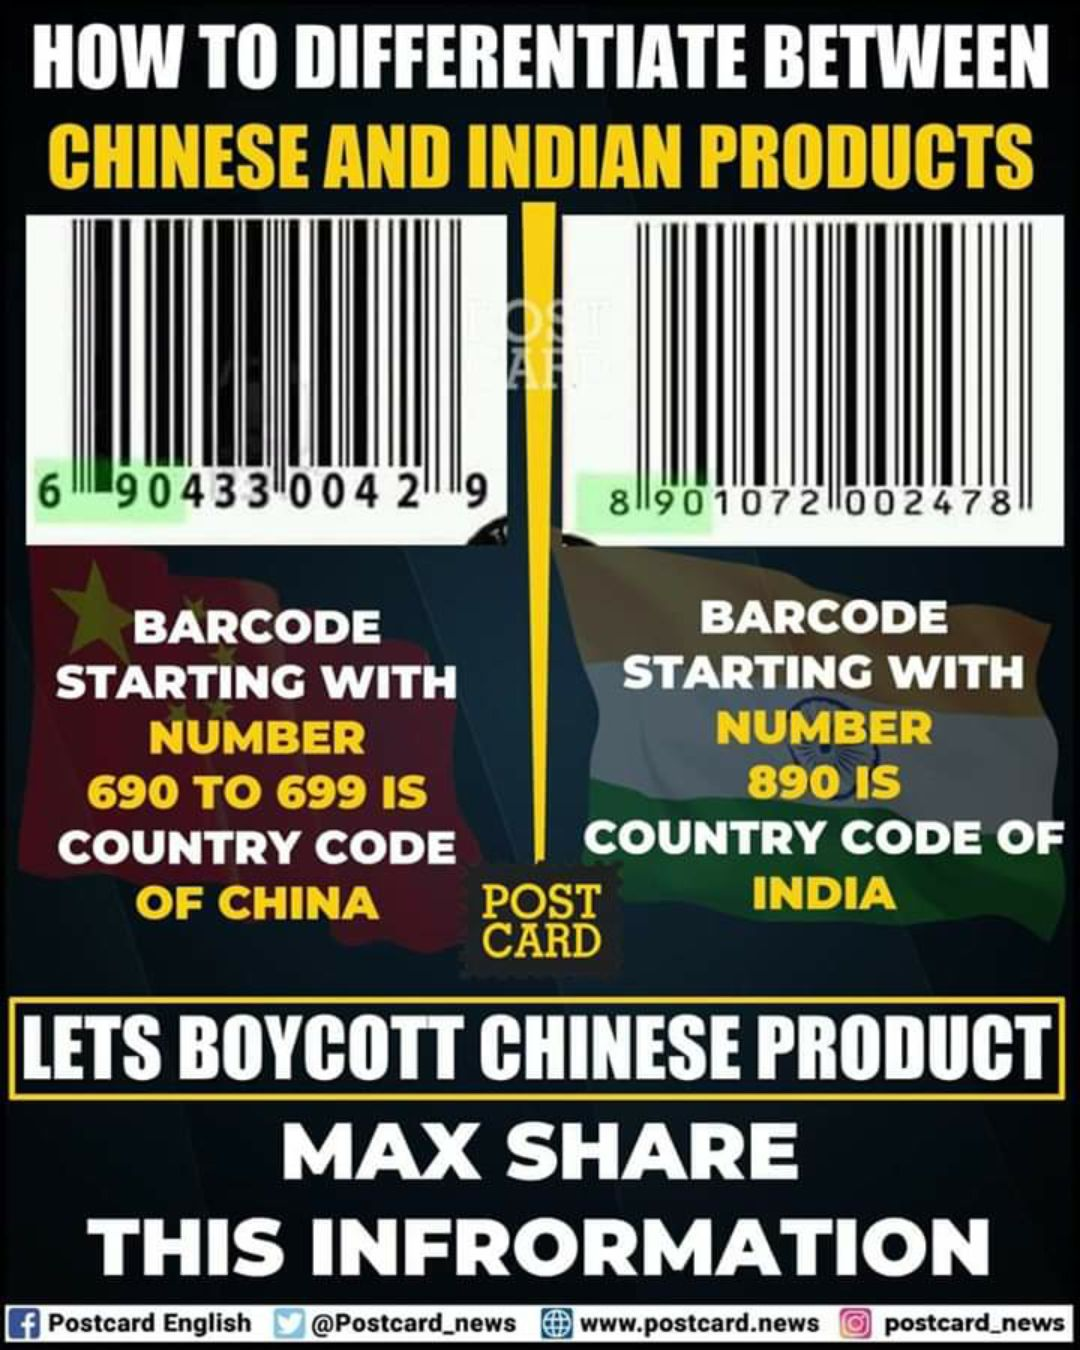 🎤 breaking news - HOW TO DIFFERENTIATE BETWEEN CHINESE AND INDIAN PRODUCTS 61904331004 2 | | | | 81190107201002478 | | BARCODE BARCODE STARTING WITH STARTING WITH NUMBER NUMBER 690 TO 699 IS 890 IS COUNTRY CODE COUNTRY CODE OF OF CHINA POST INDIA CARD LETS BOYCOTT CHINESE PRODUCT MAX SHARE THIS INFRORMATION Ef Postcard English @ Postcard _ news www . postcard . news postcard _ news - ShareChat